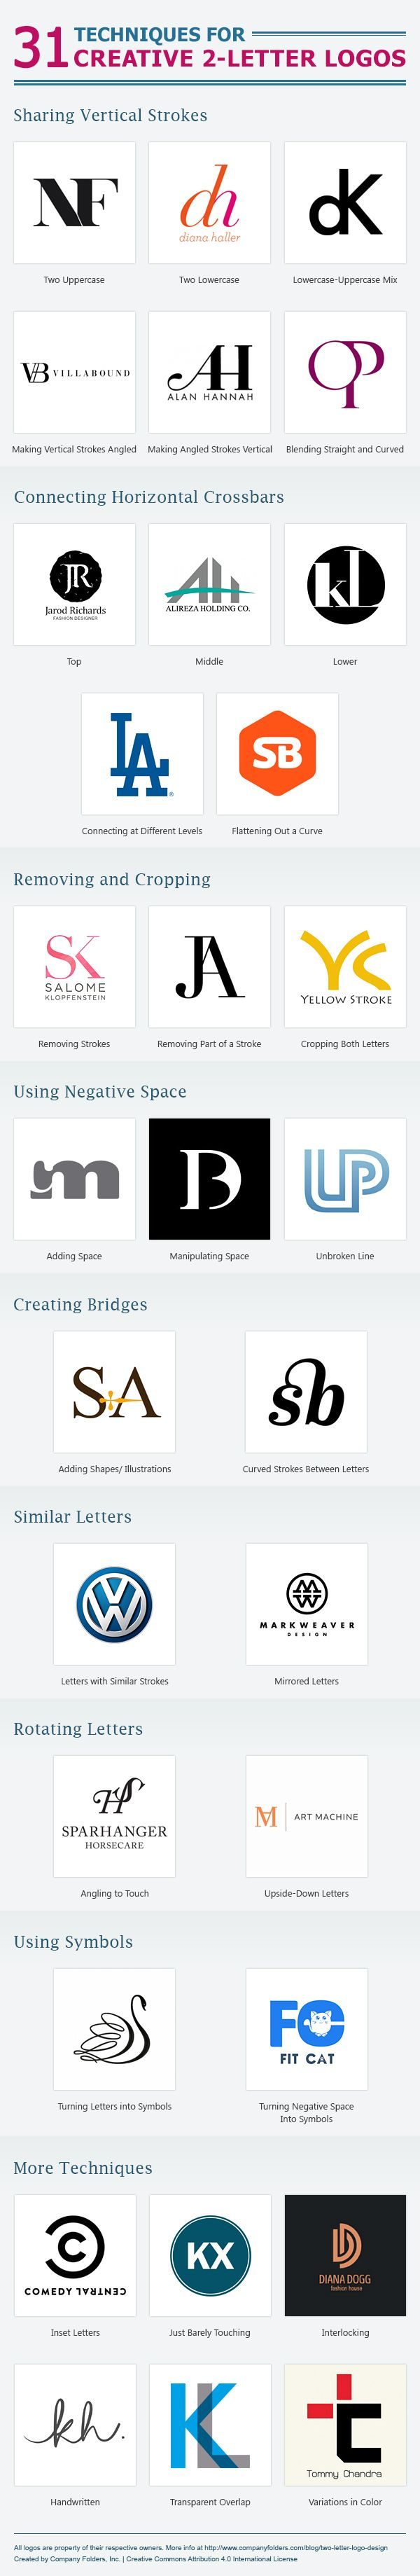 got a 2 letter business name 31 ways to make your logo more creative - Design Company Name Ideas